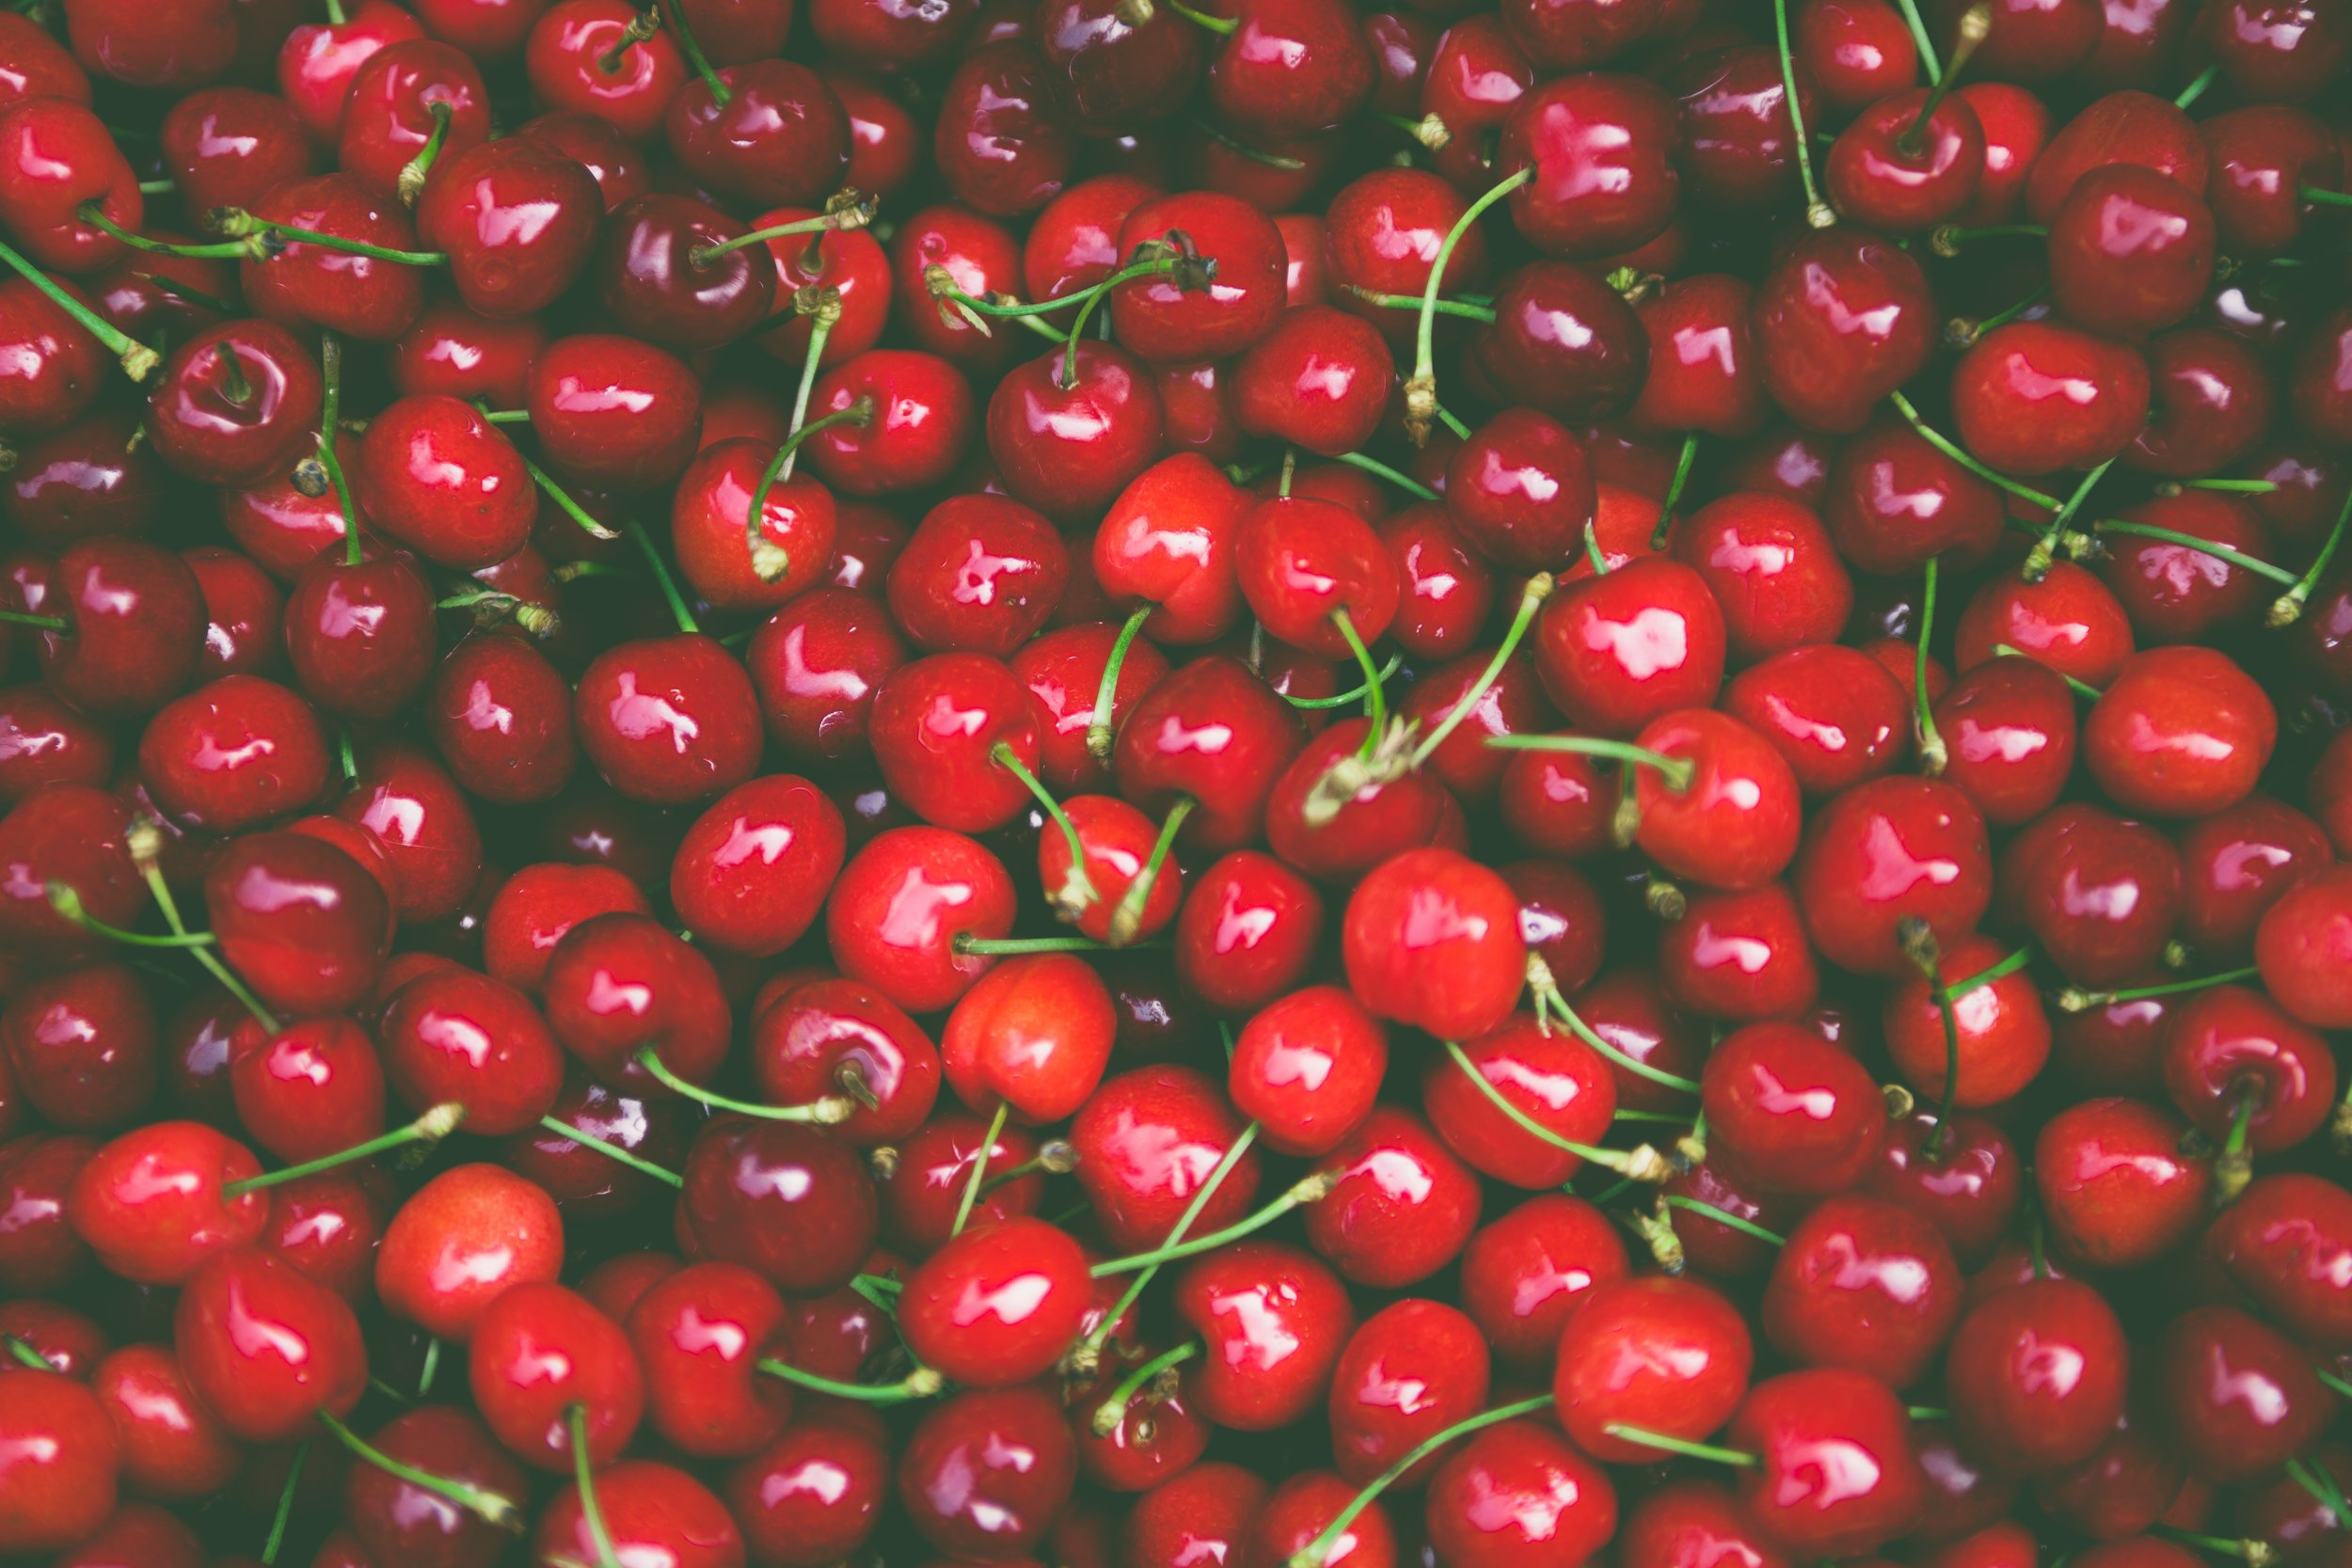 cherries-close-up-delicious-175727.jpg